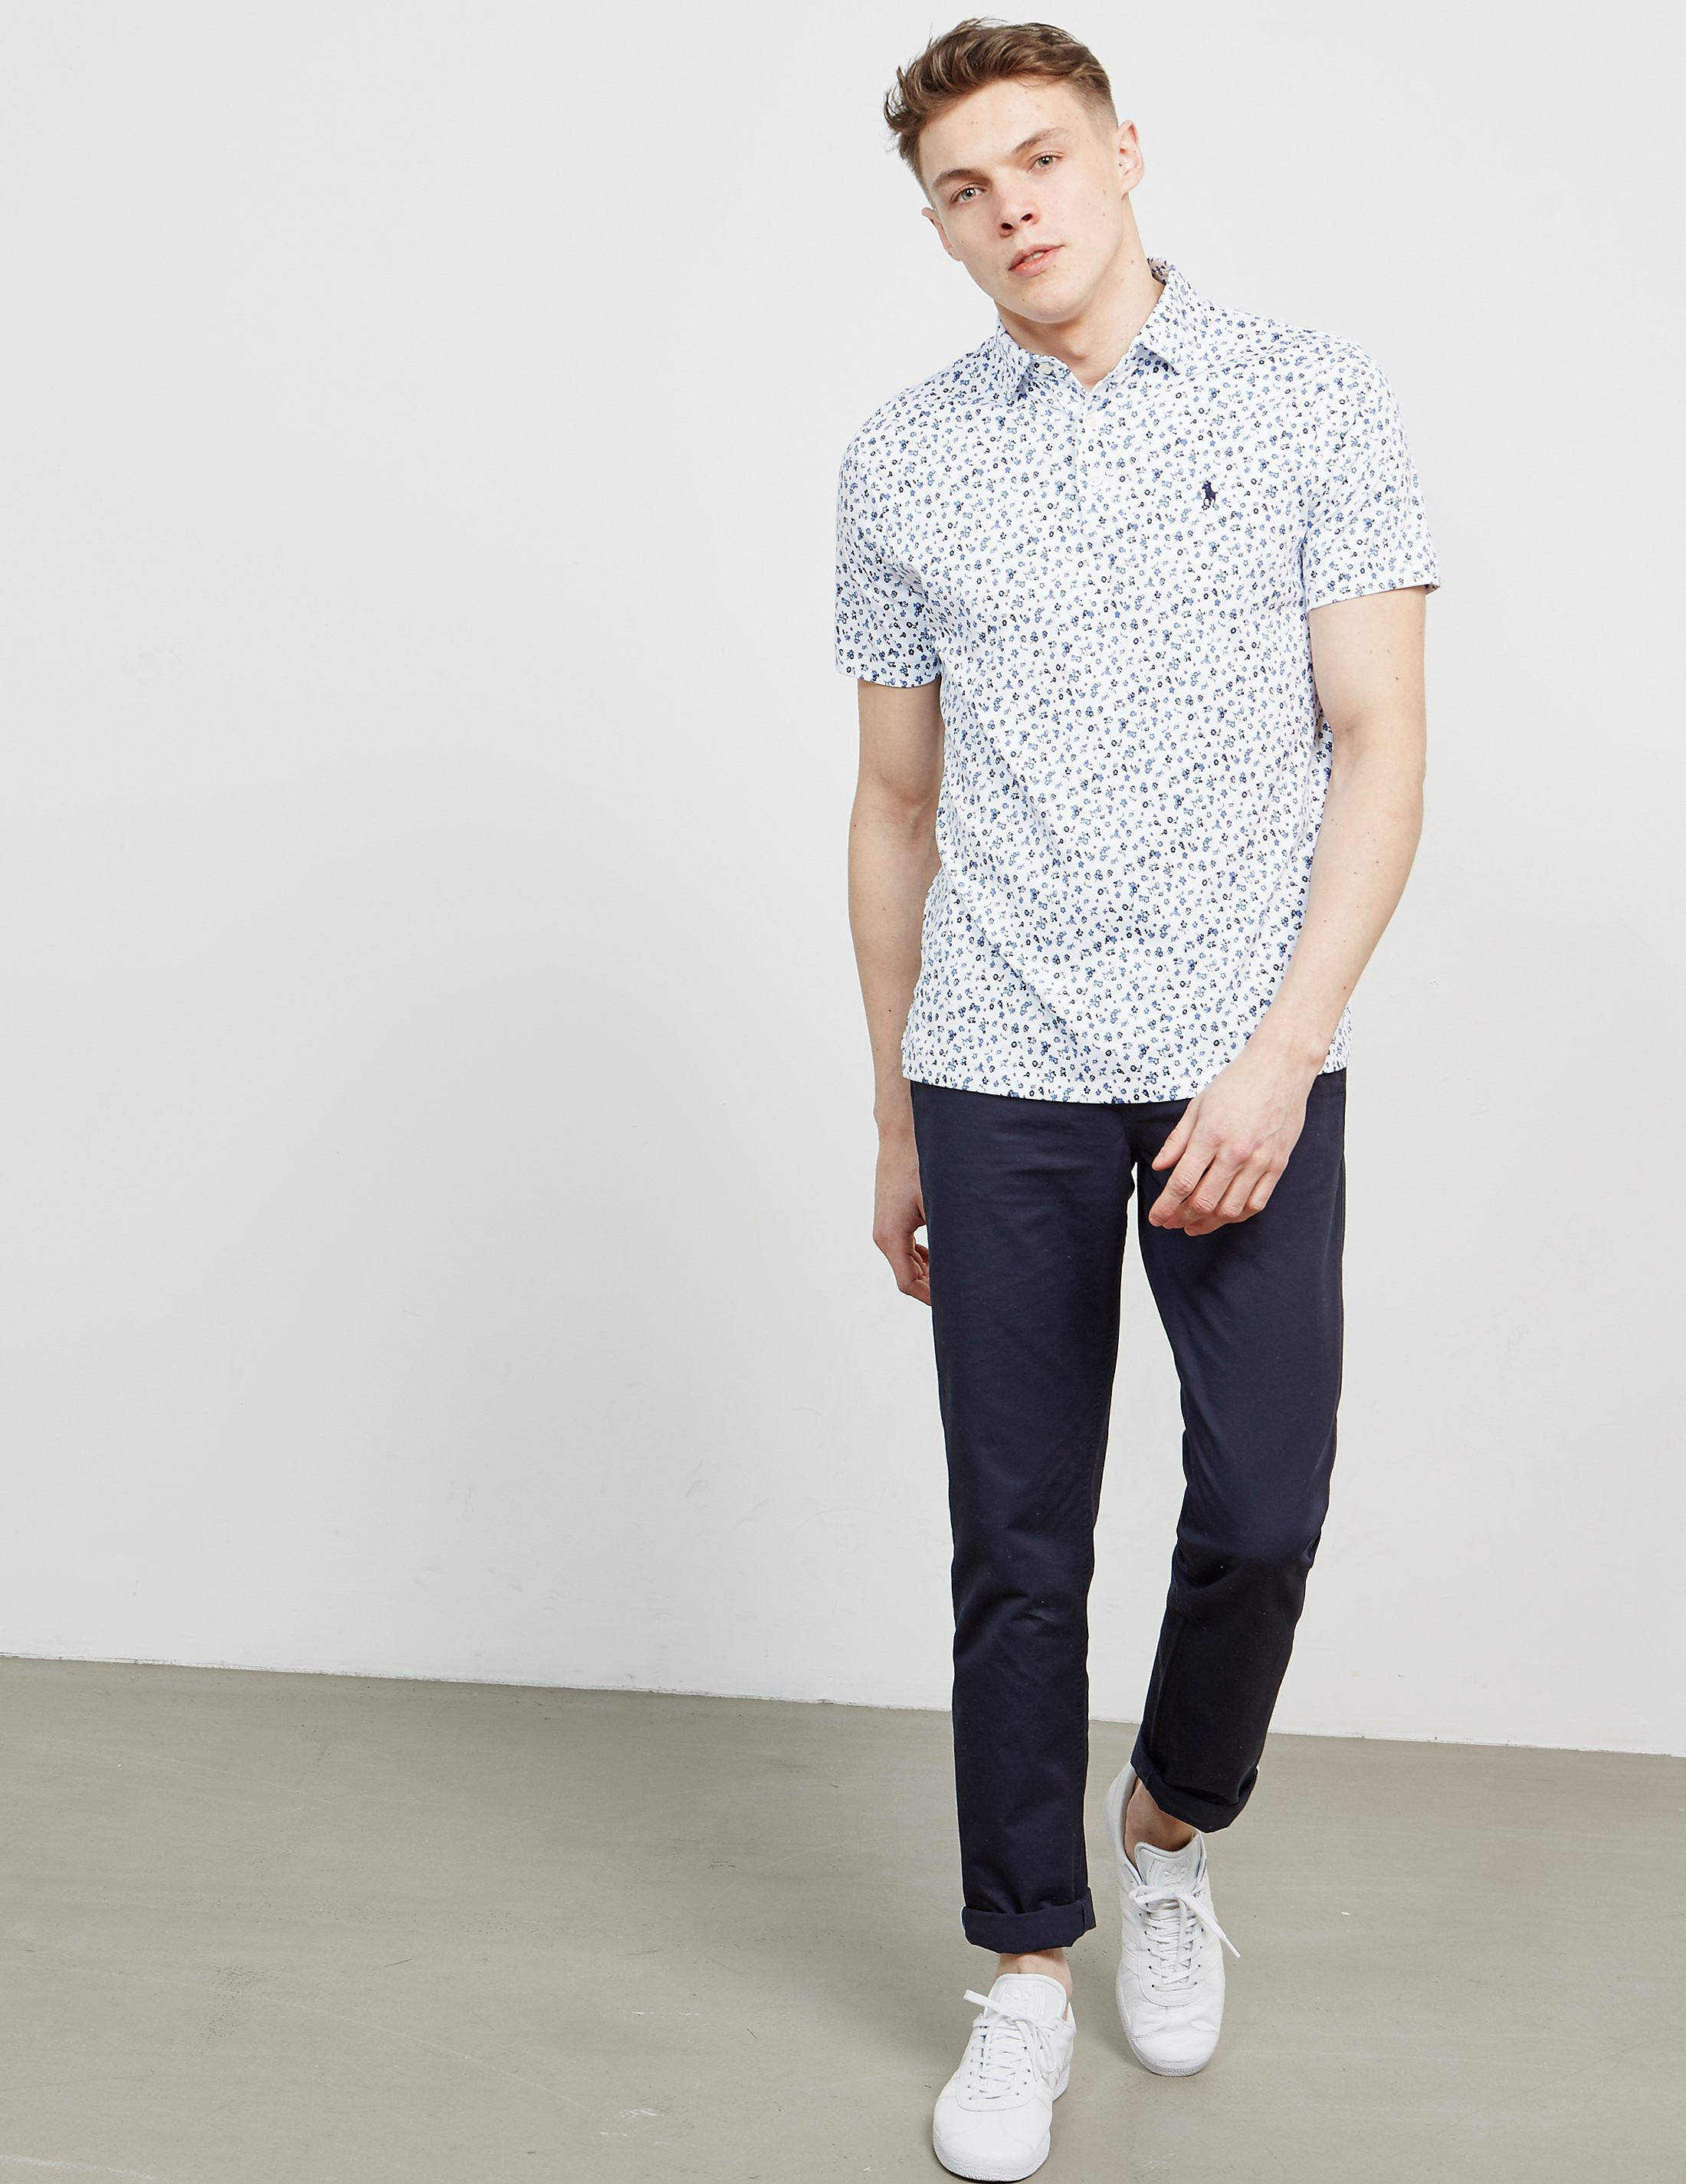 Polo Ralph Lauren Floral Short Sleeve Shirt - Online Exclusive